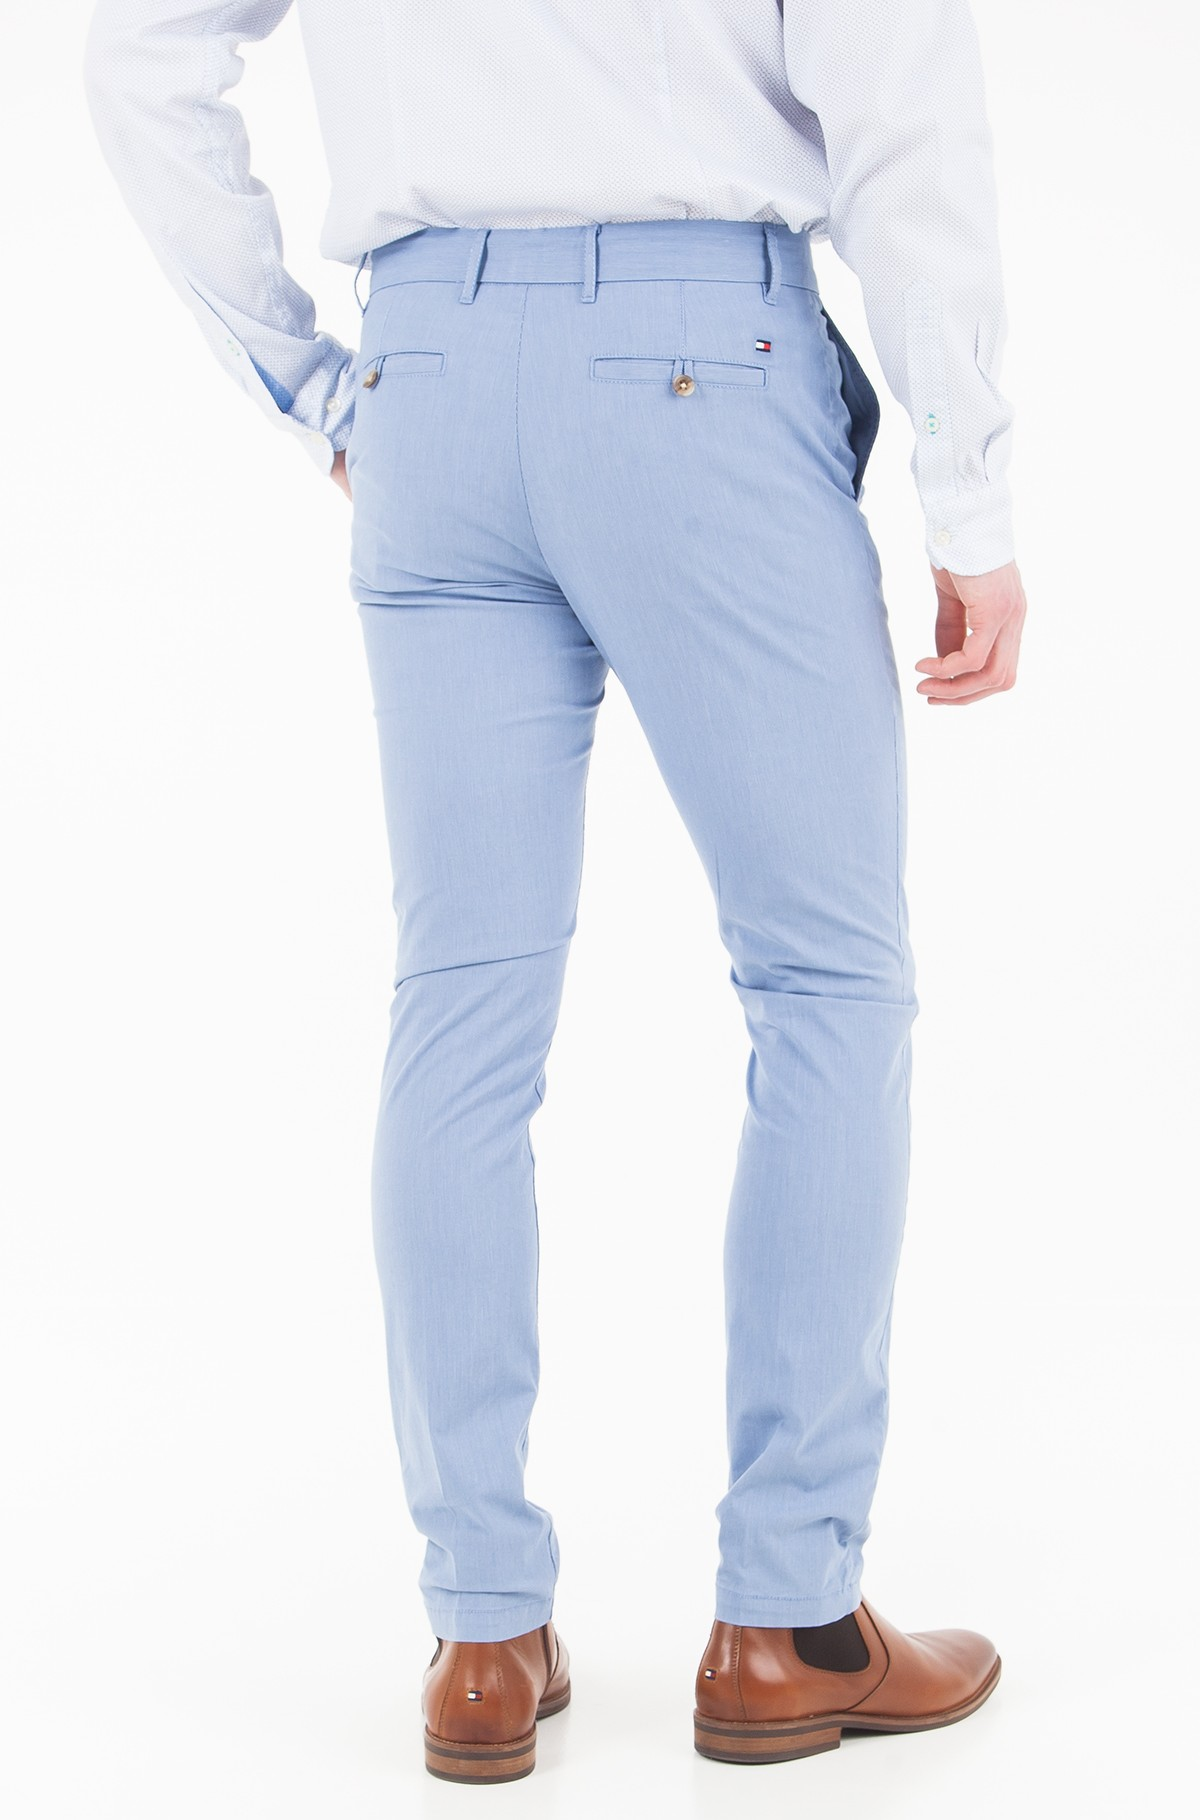 Trousers Denton Chino Str Lt Wt Yd Stripe-full-2